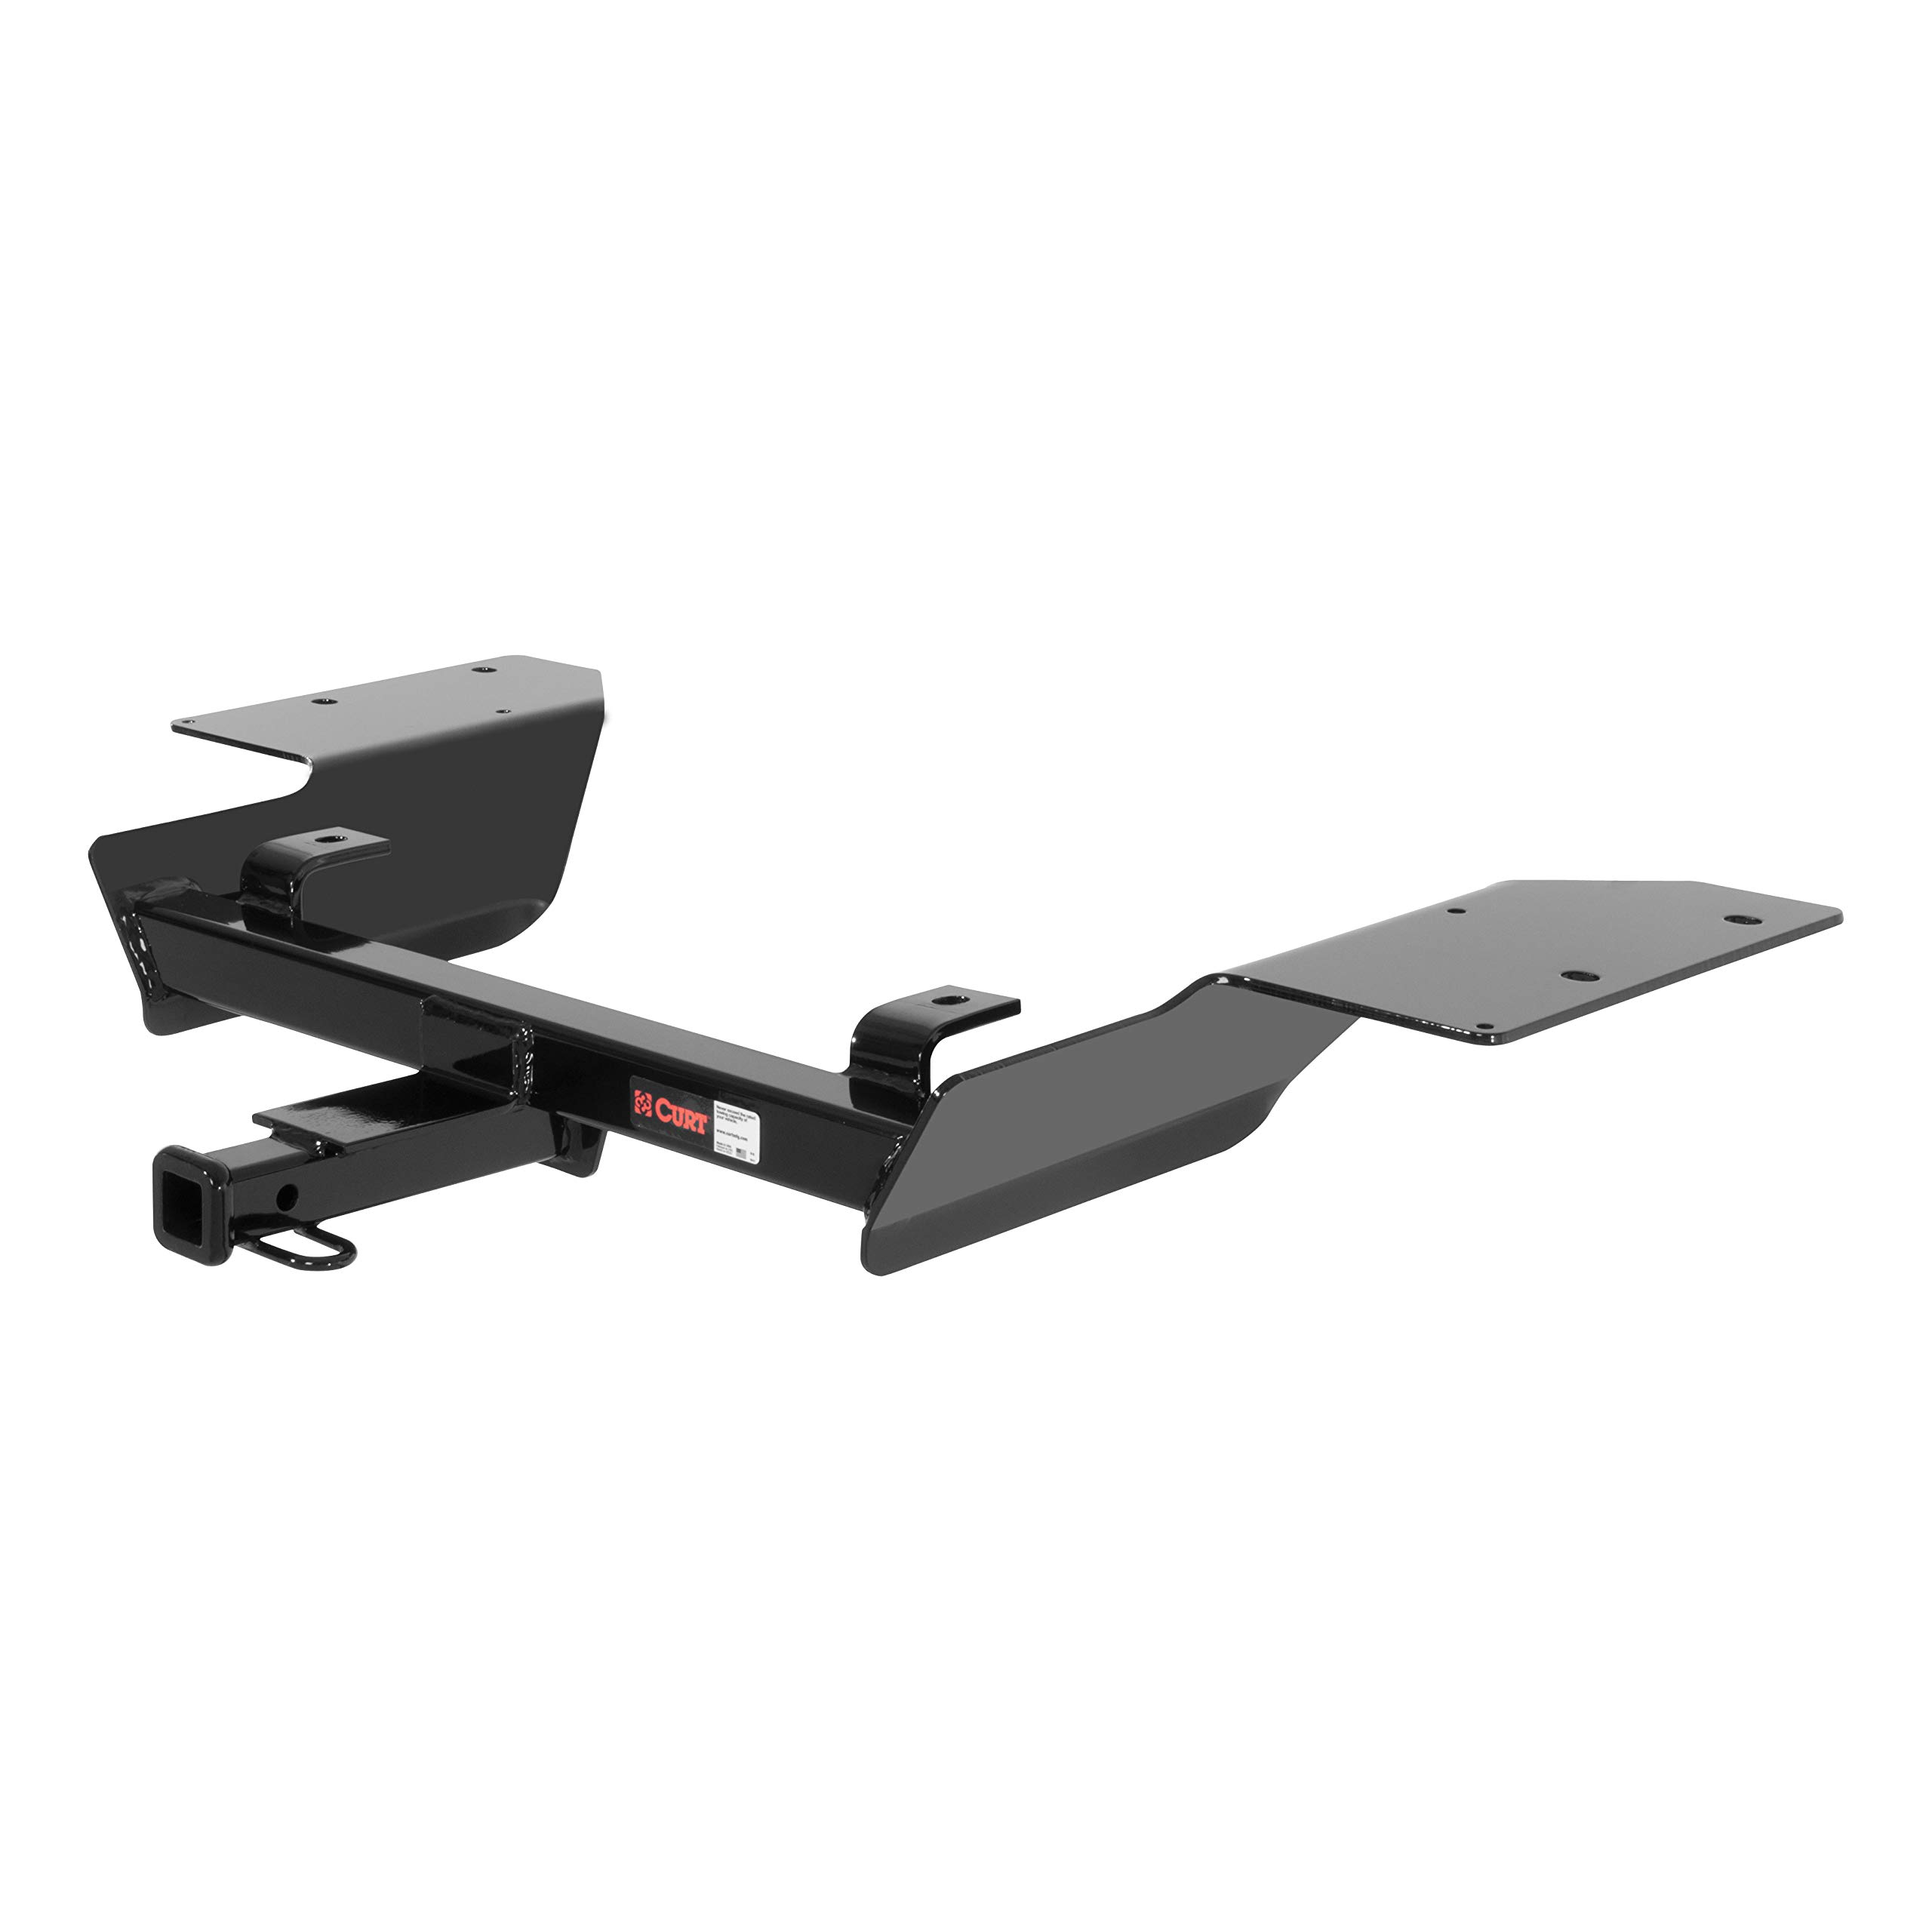 CURT 12252 Class 2 Trailer Hitch, 1-1/4-Inch Receiver Black 1-1/4'' Select Chevrolet Impala